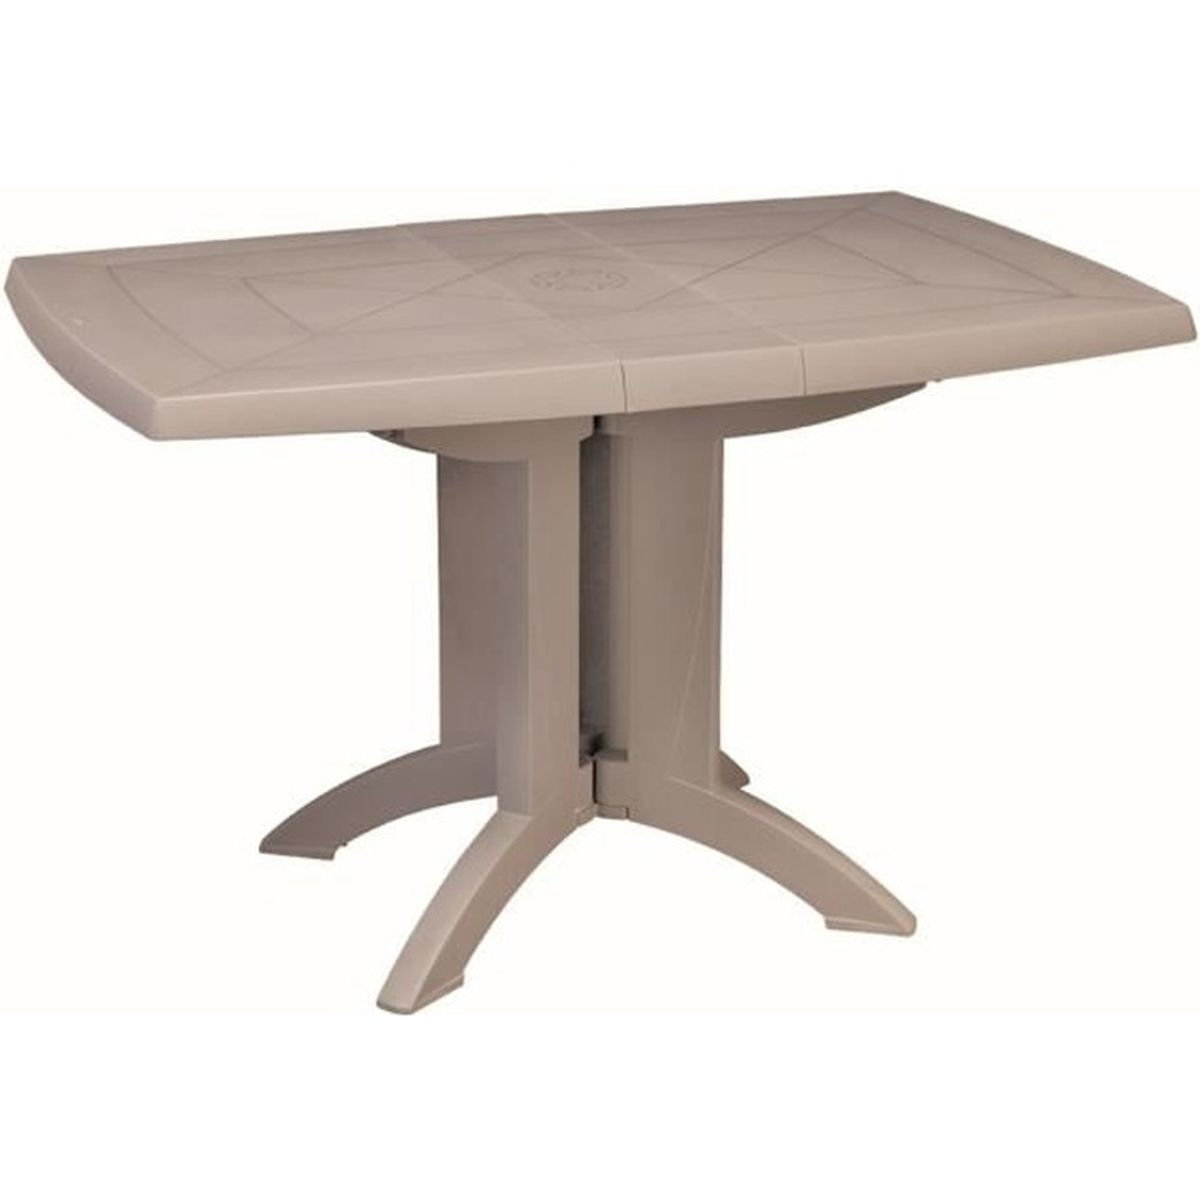 Awesome table de jardin pliante vega pictures awesome for Table pliante